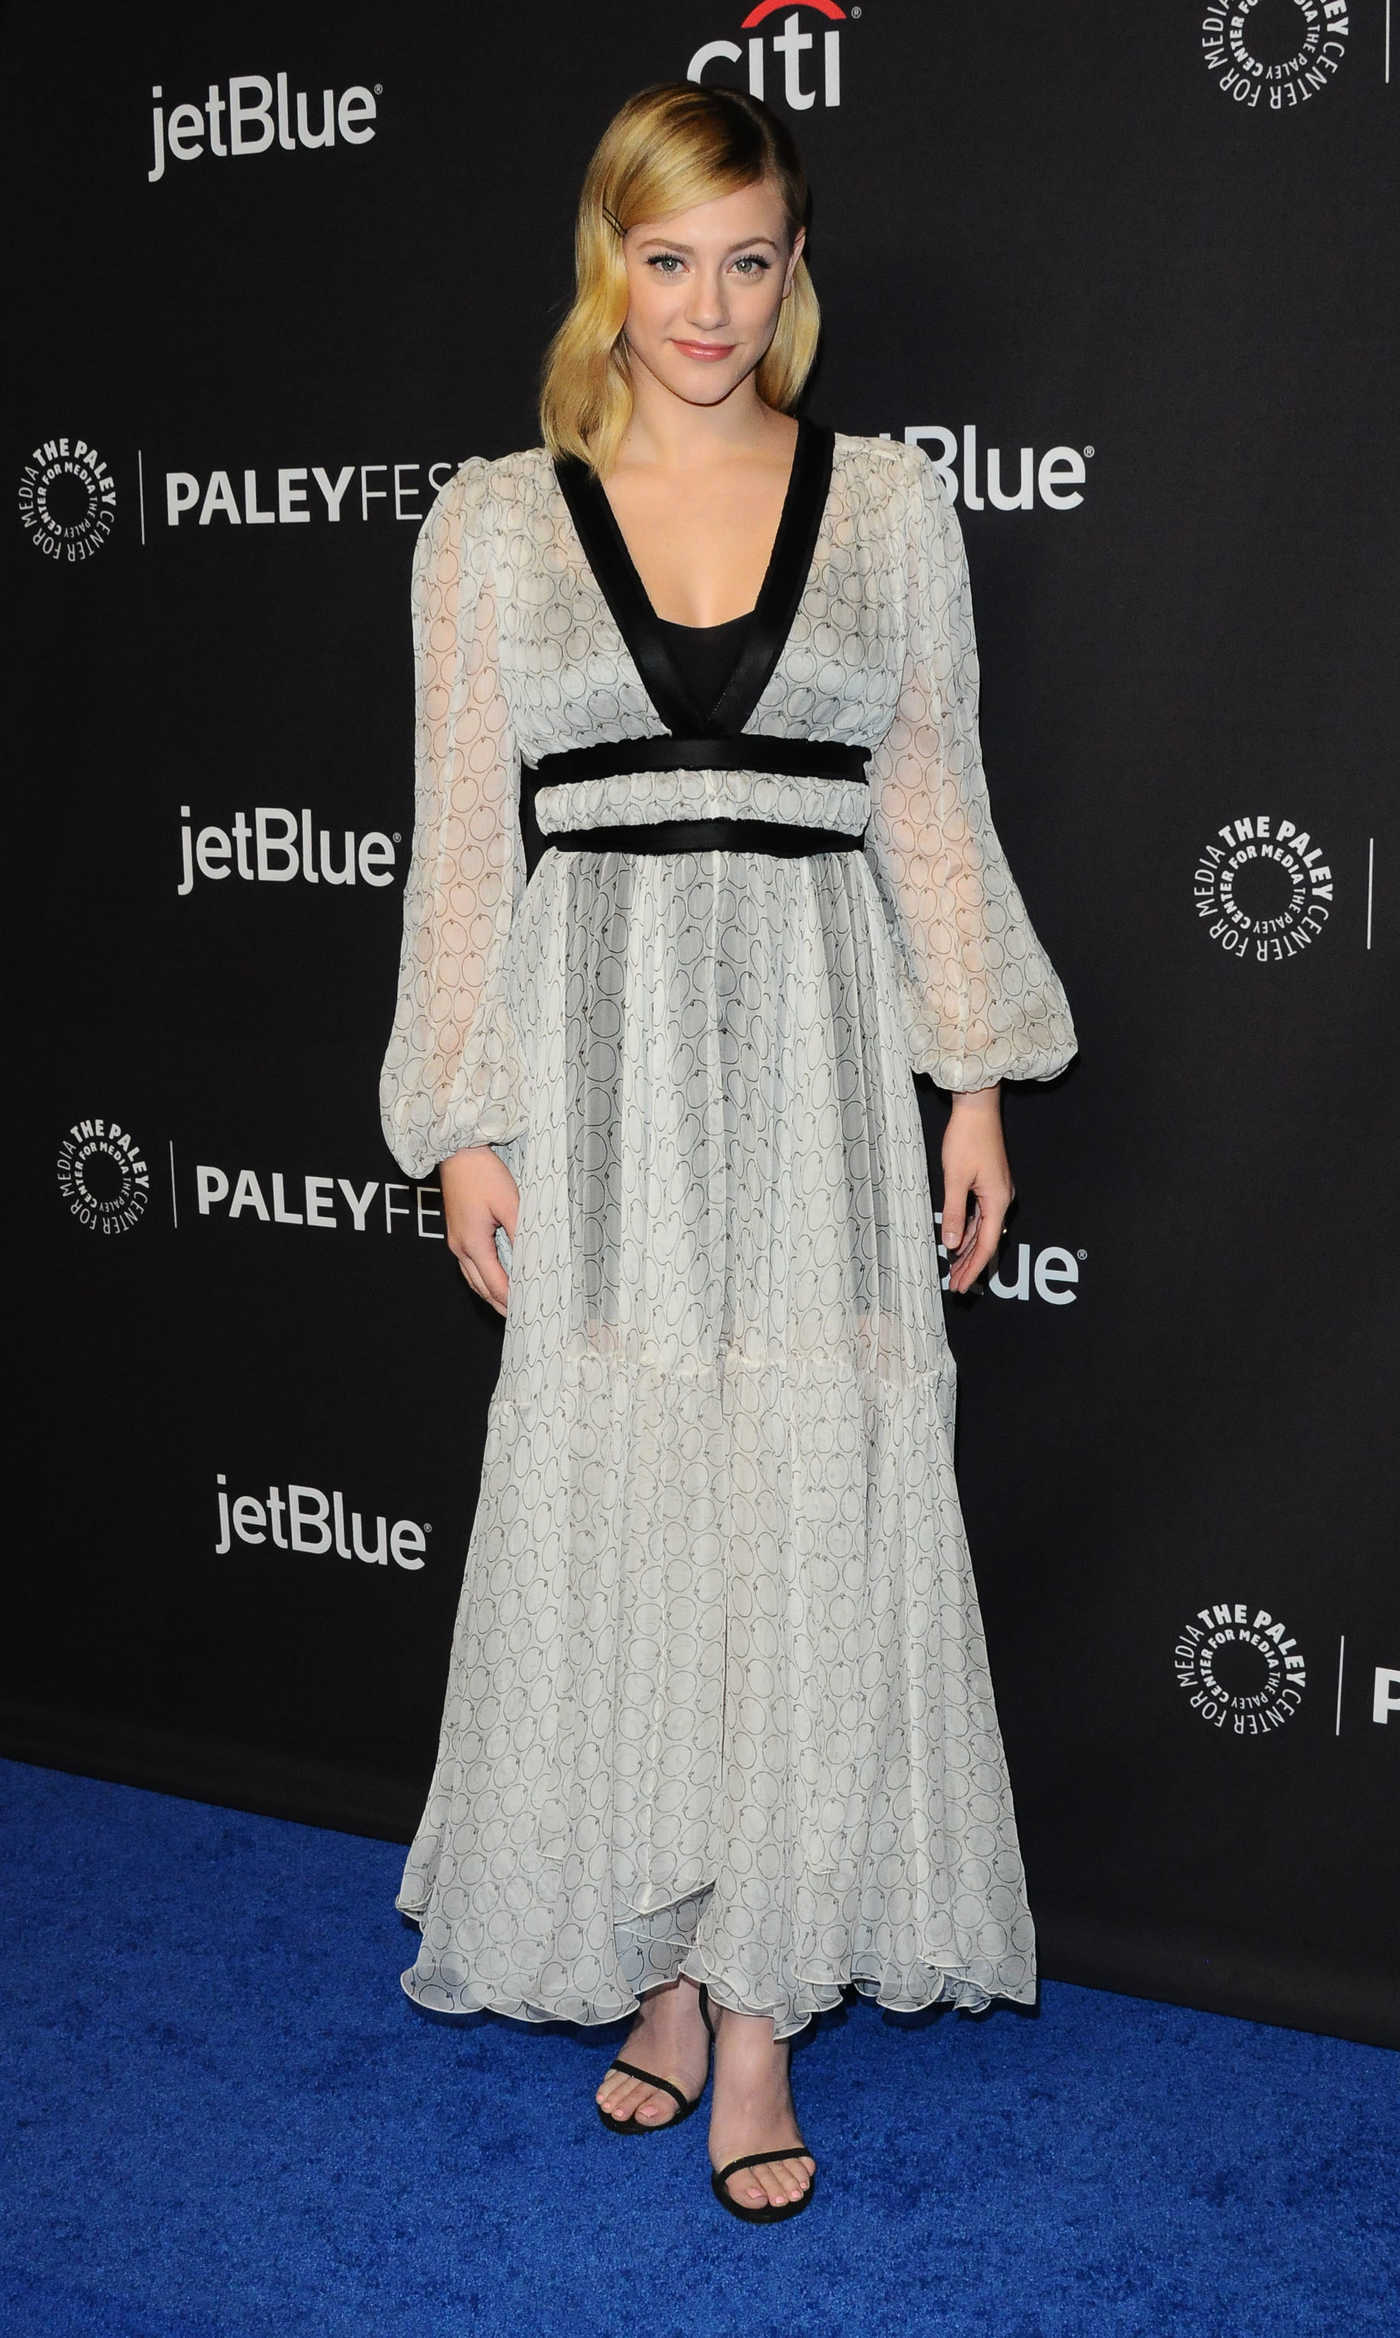 Lili Reinhart at the Riverdale TV Show Presentation During the Paleyfest in Los Angeles 03/25/2018